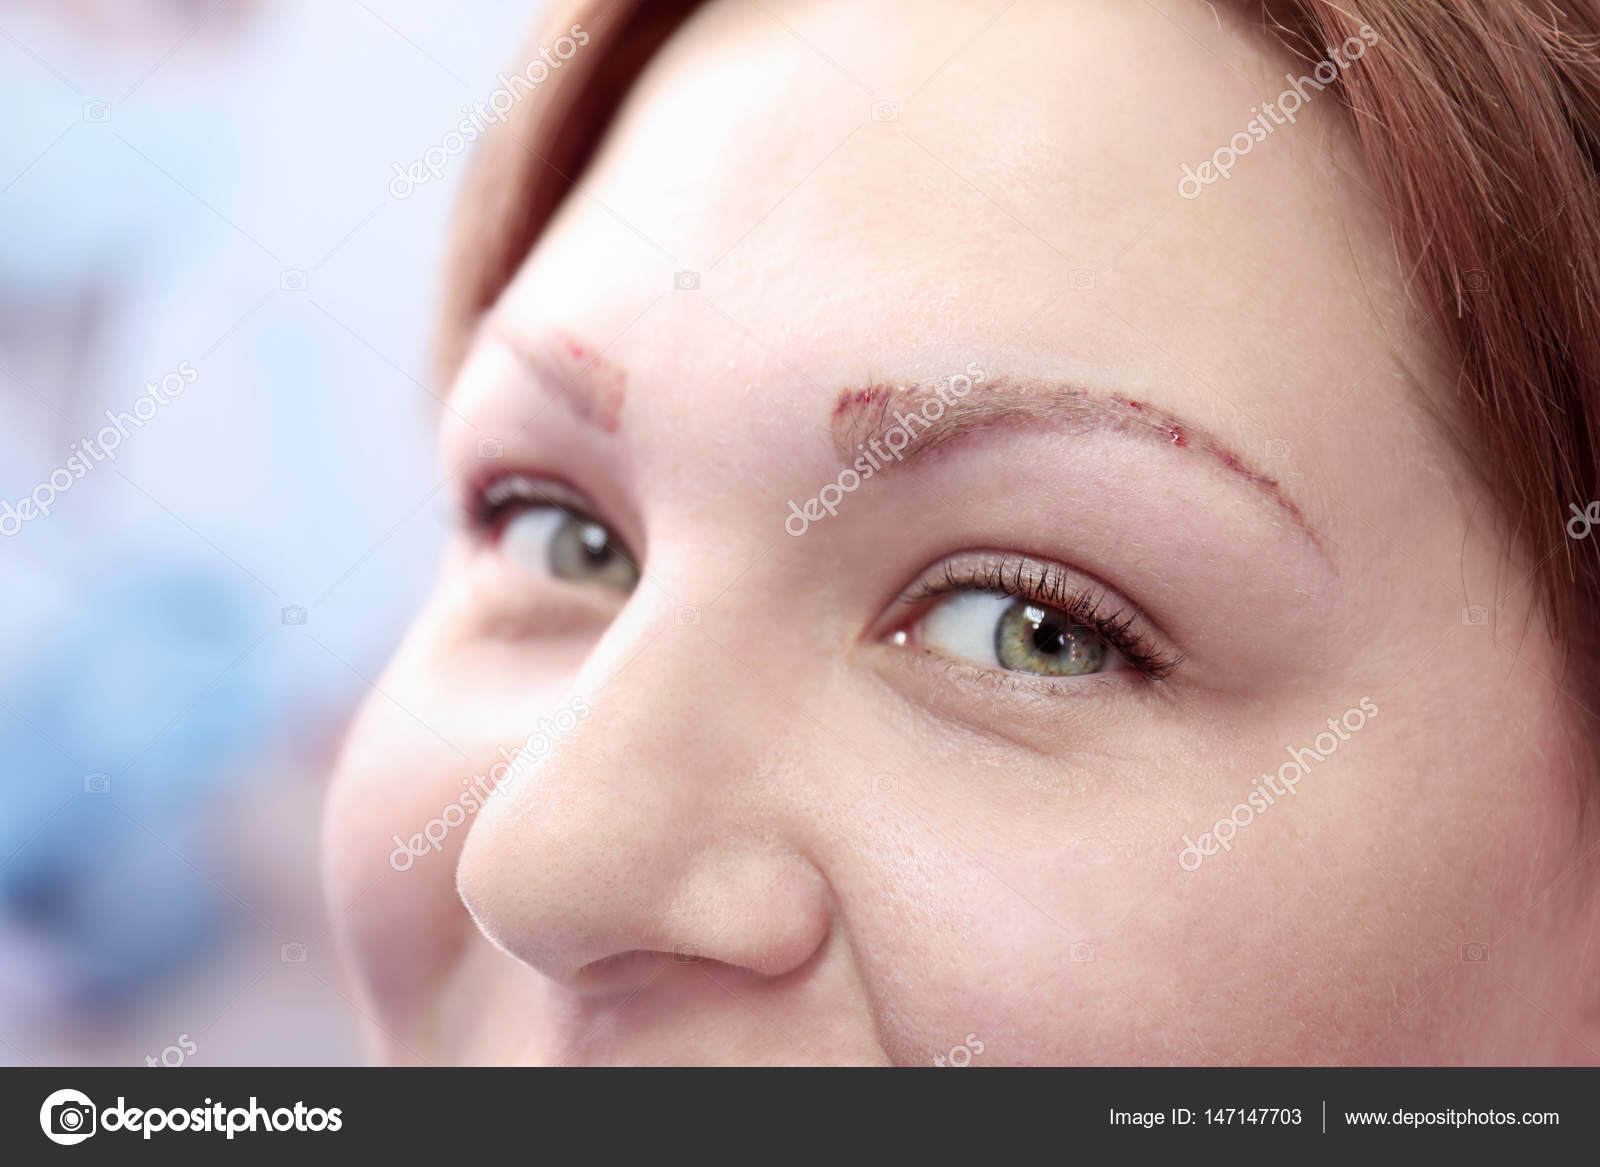 Eyebrow Tattoo Removal Stock Photo Belchonock 147147703